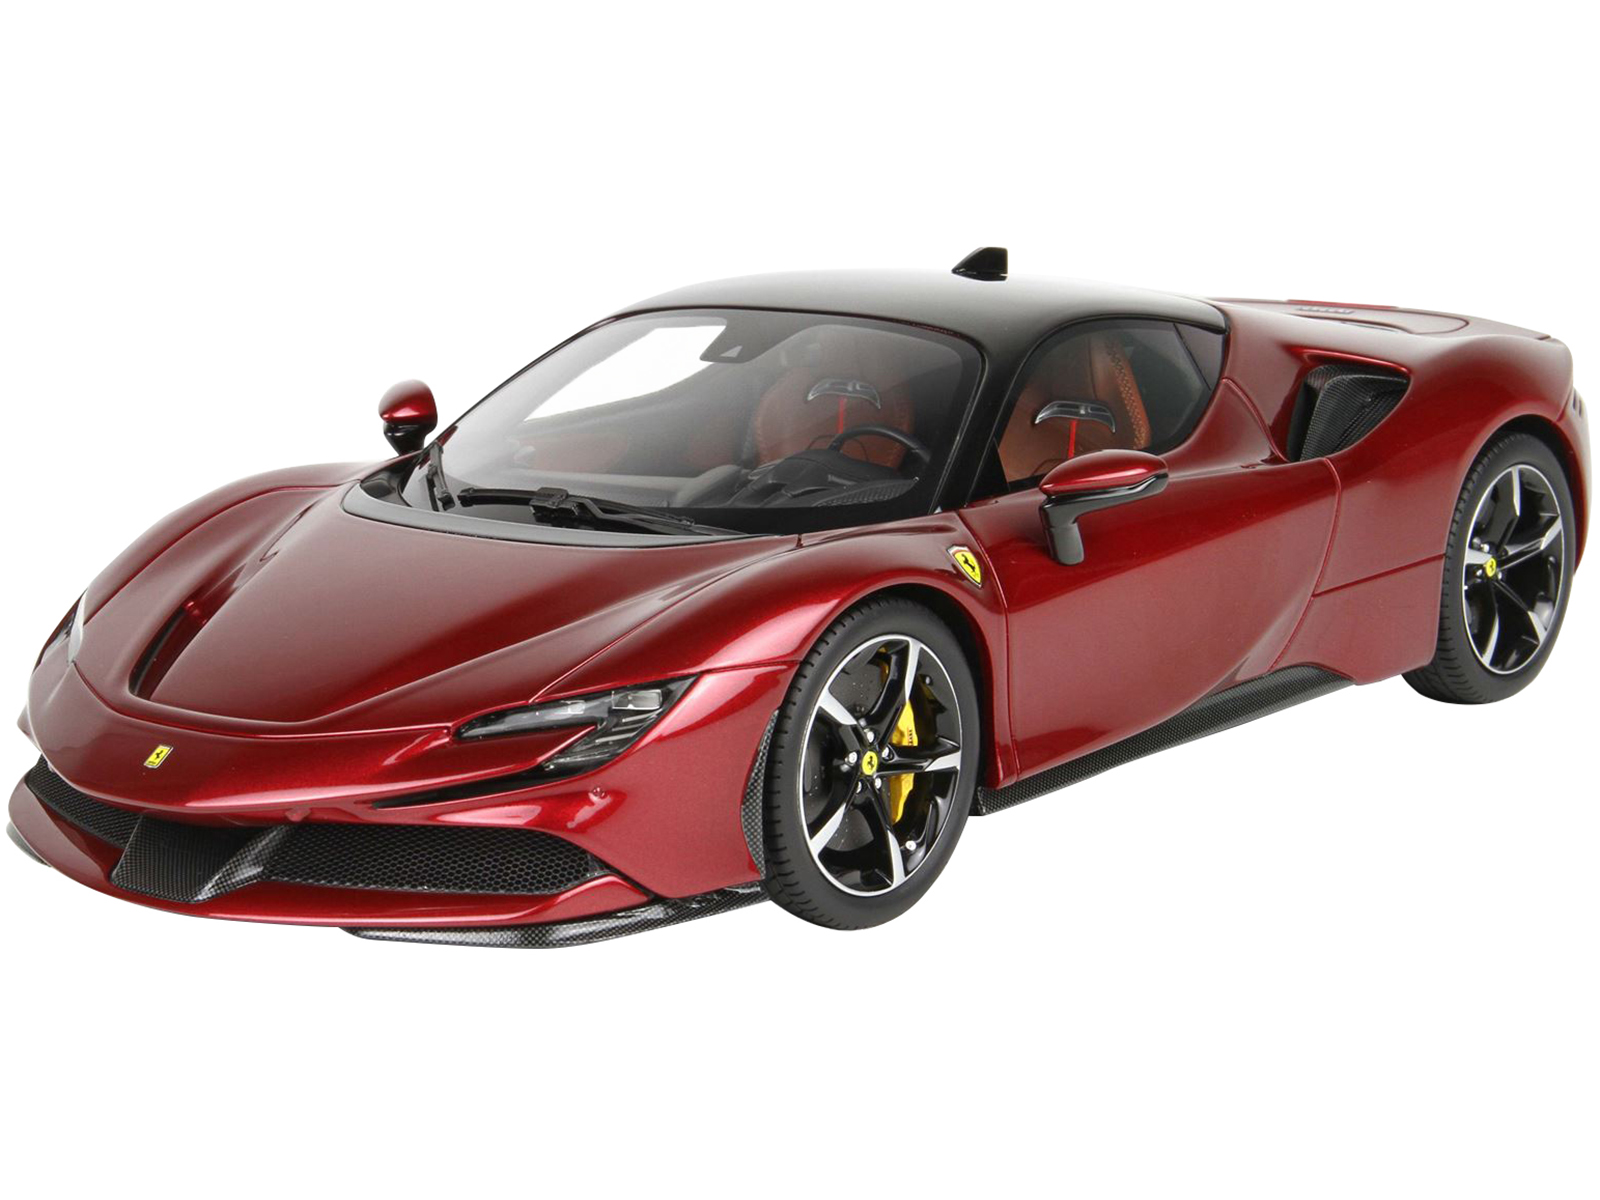 2019 Ferrari Sf90 Stradale Rosso Fiorano Red Metallic With Black Top With Display Case Limited Edition To 200 Pieces Worldwide 1 18 Model Car By Bbr Walmart Com Walmart Com